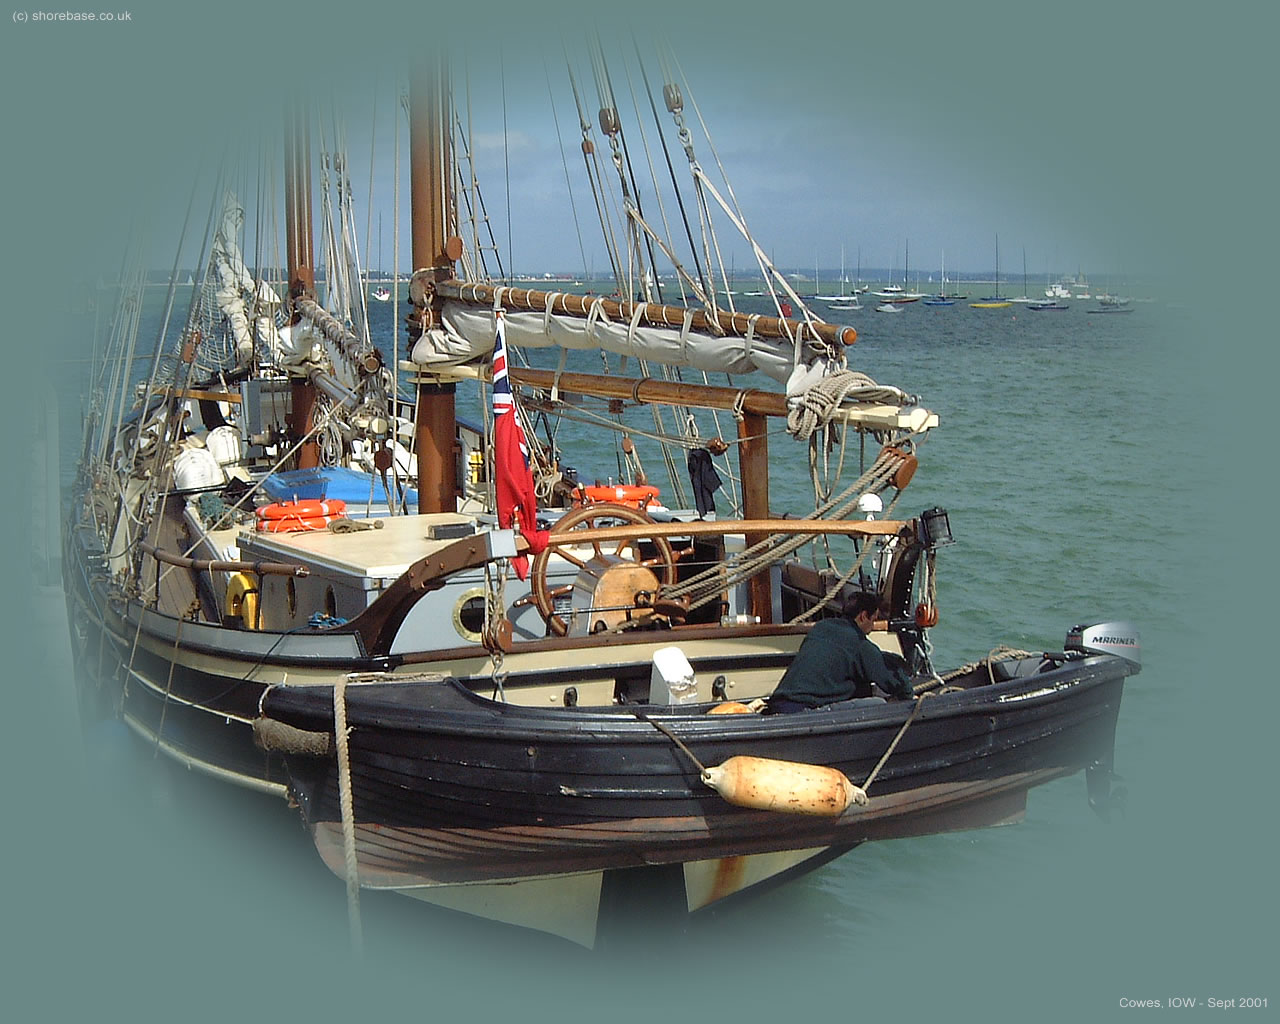 Schooner 'Galadriel' moored at Cowes Yacht Haven, September 2001.